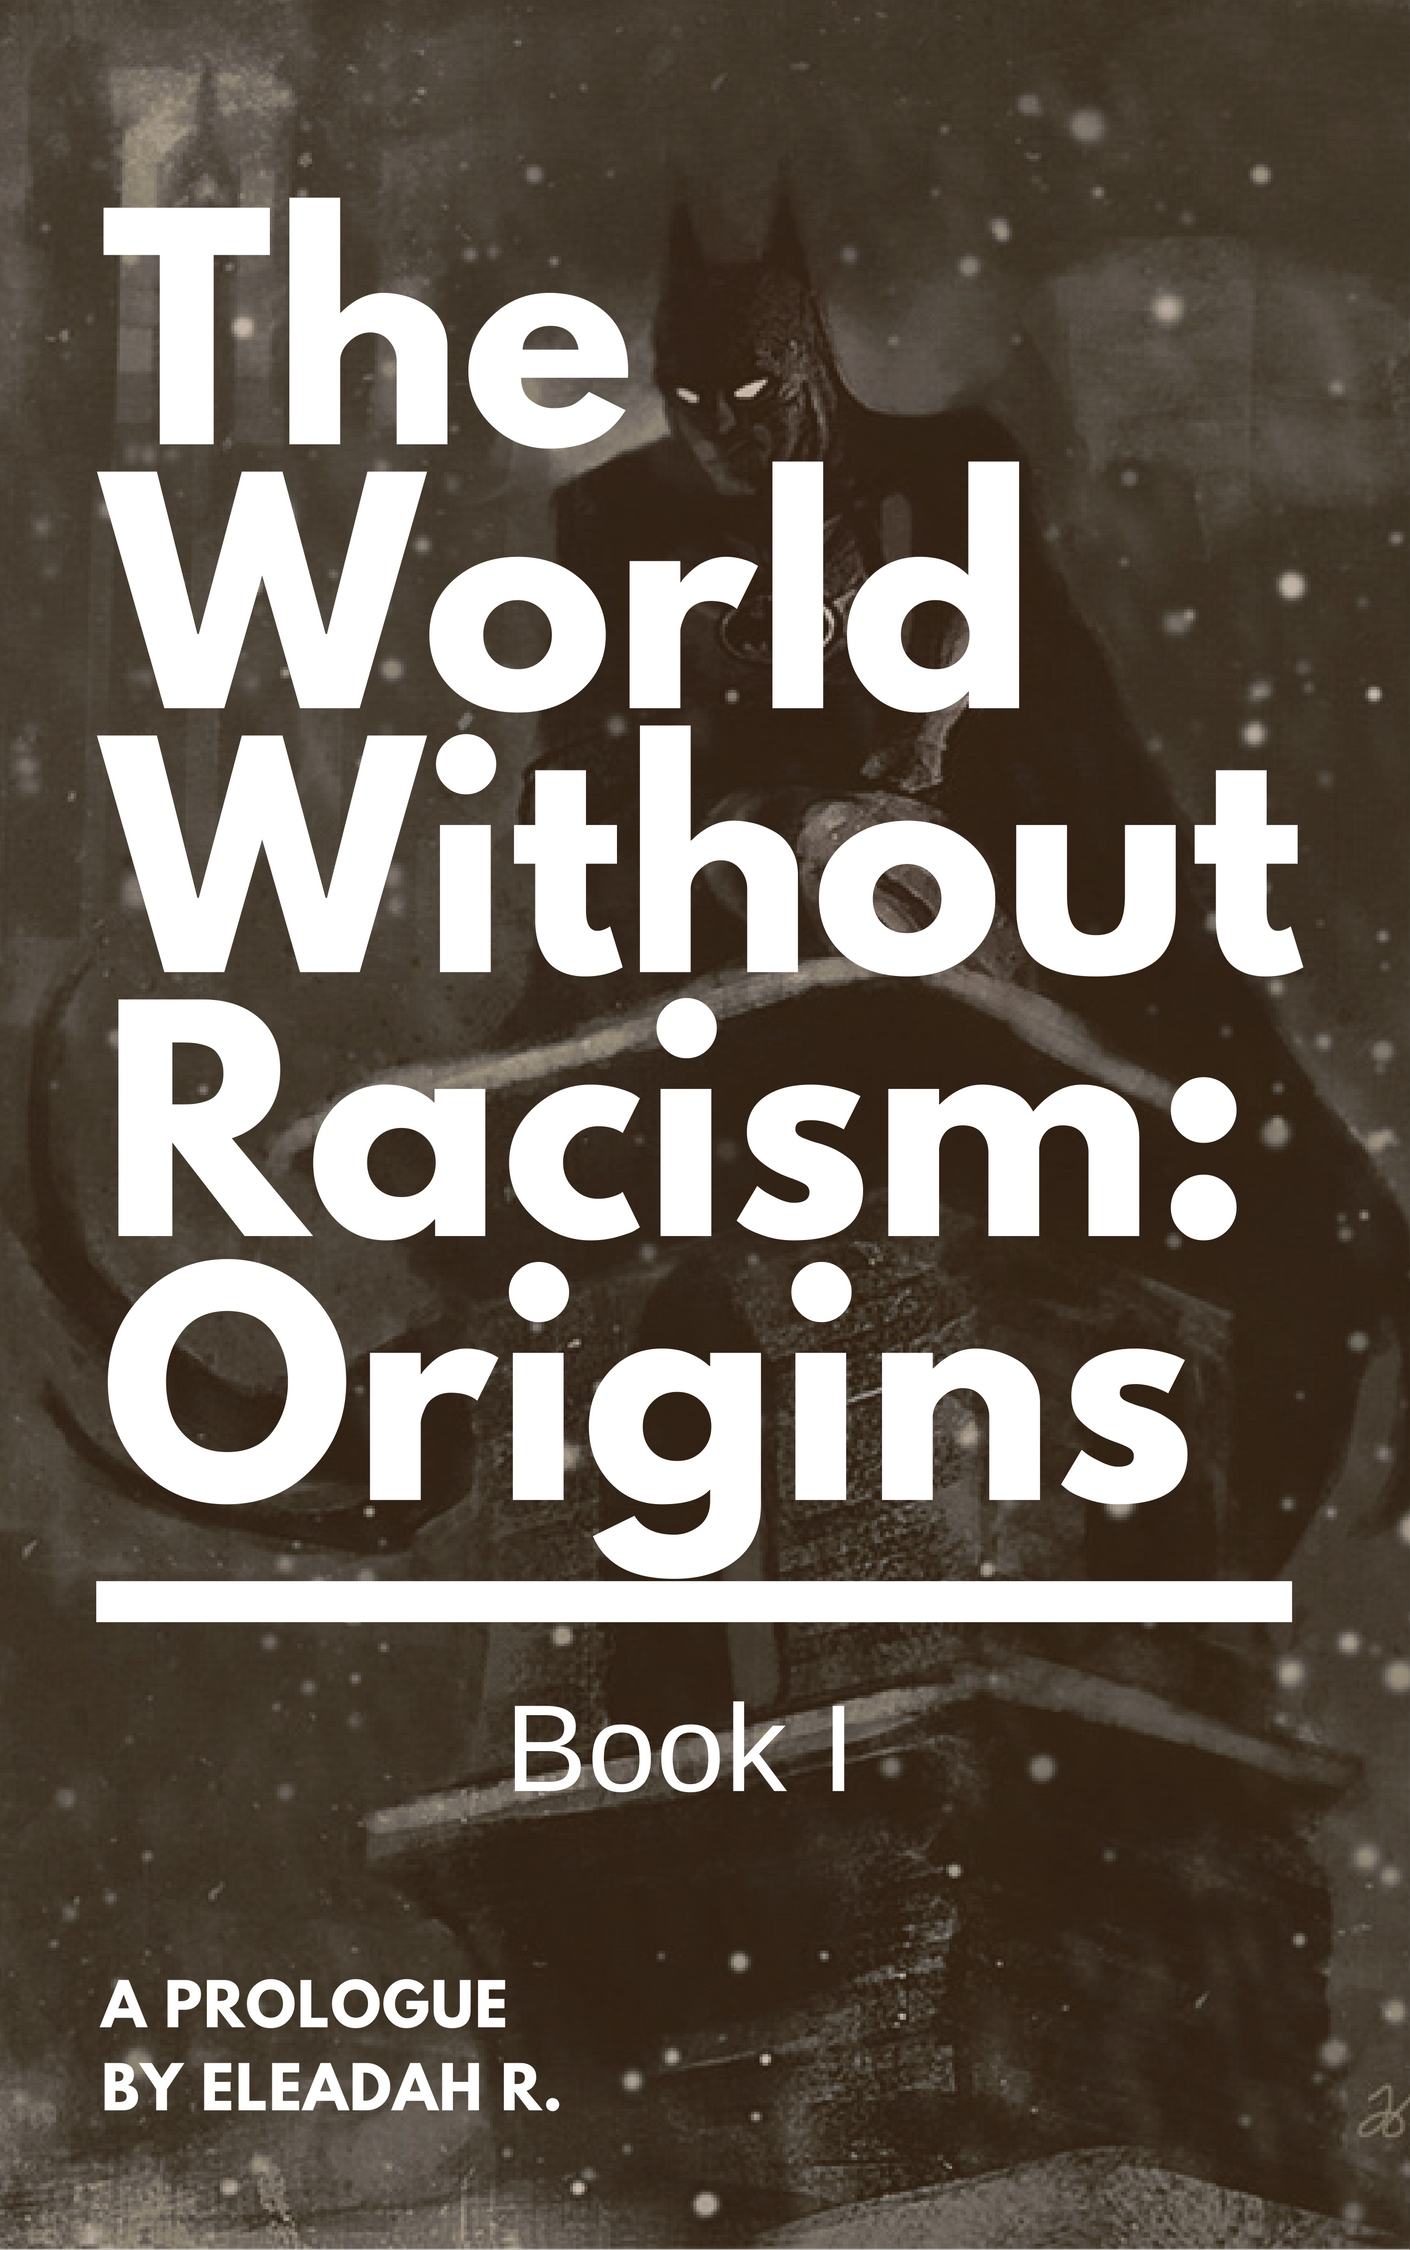 The World Without Racism Origins